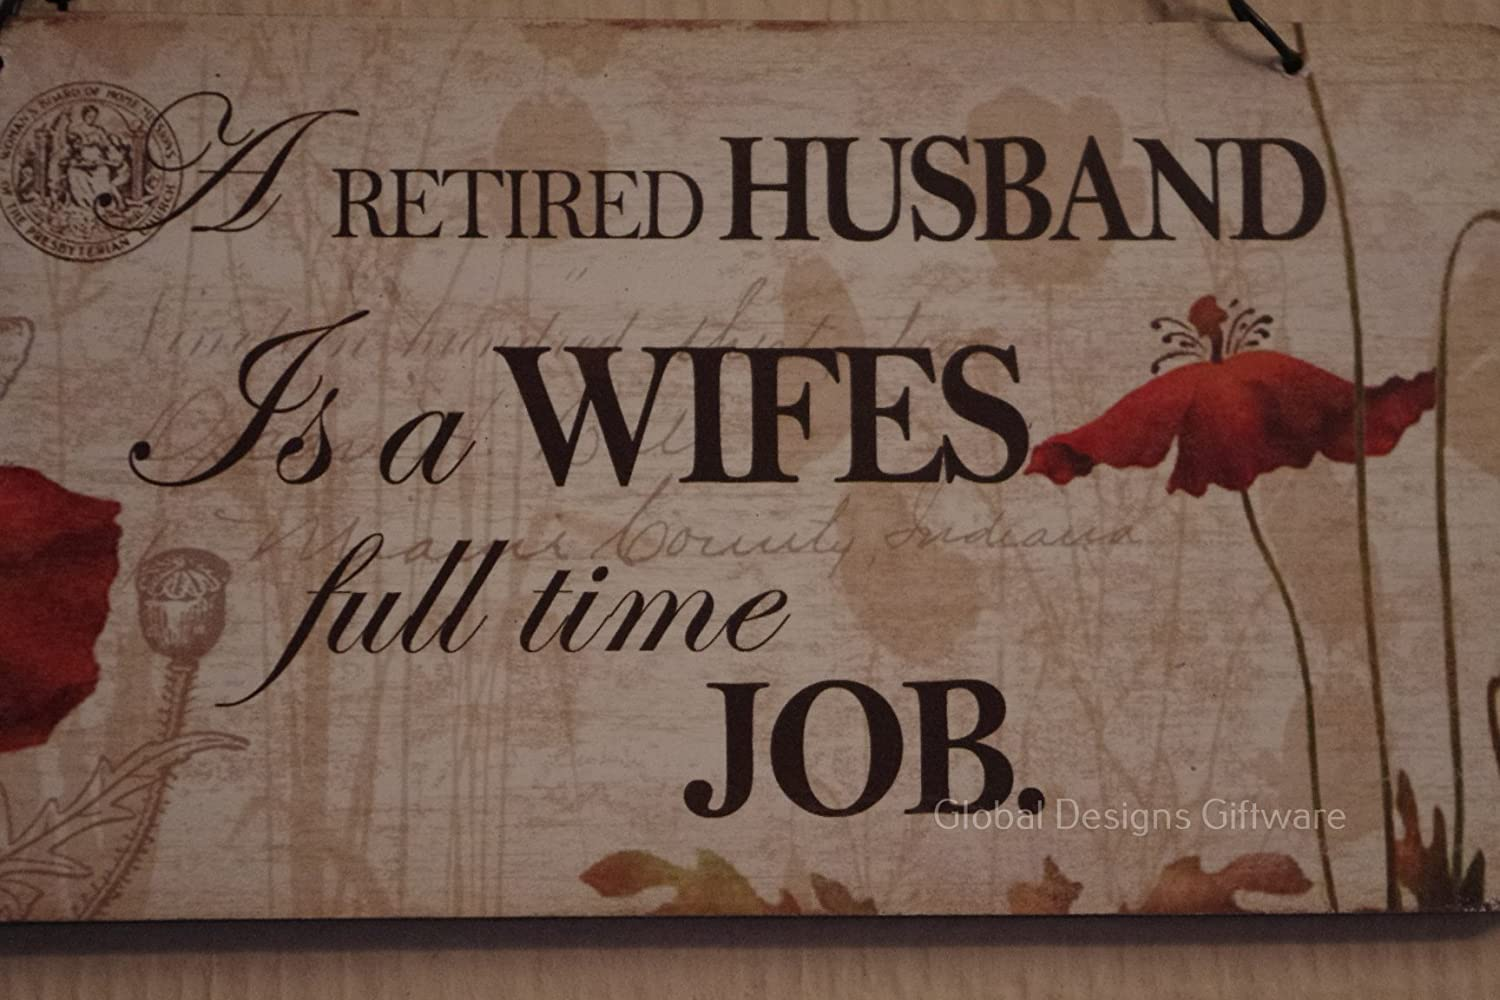 GLOBAL DESIGNS POPPY PLAQUE WOODEN SIGN A Retired Husband